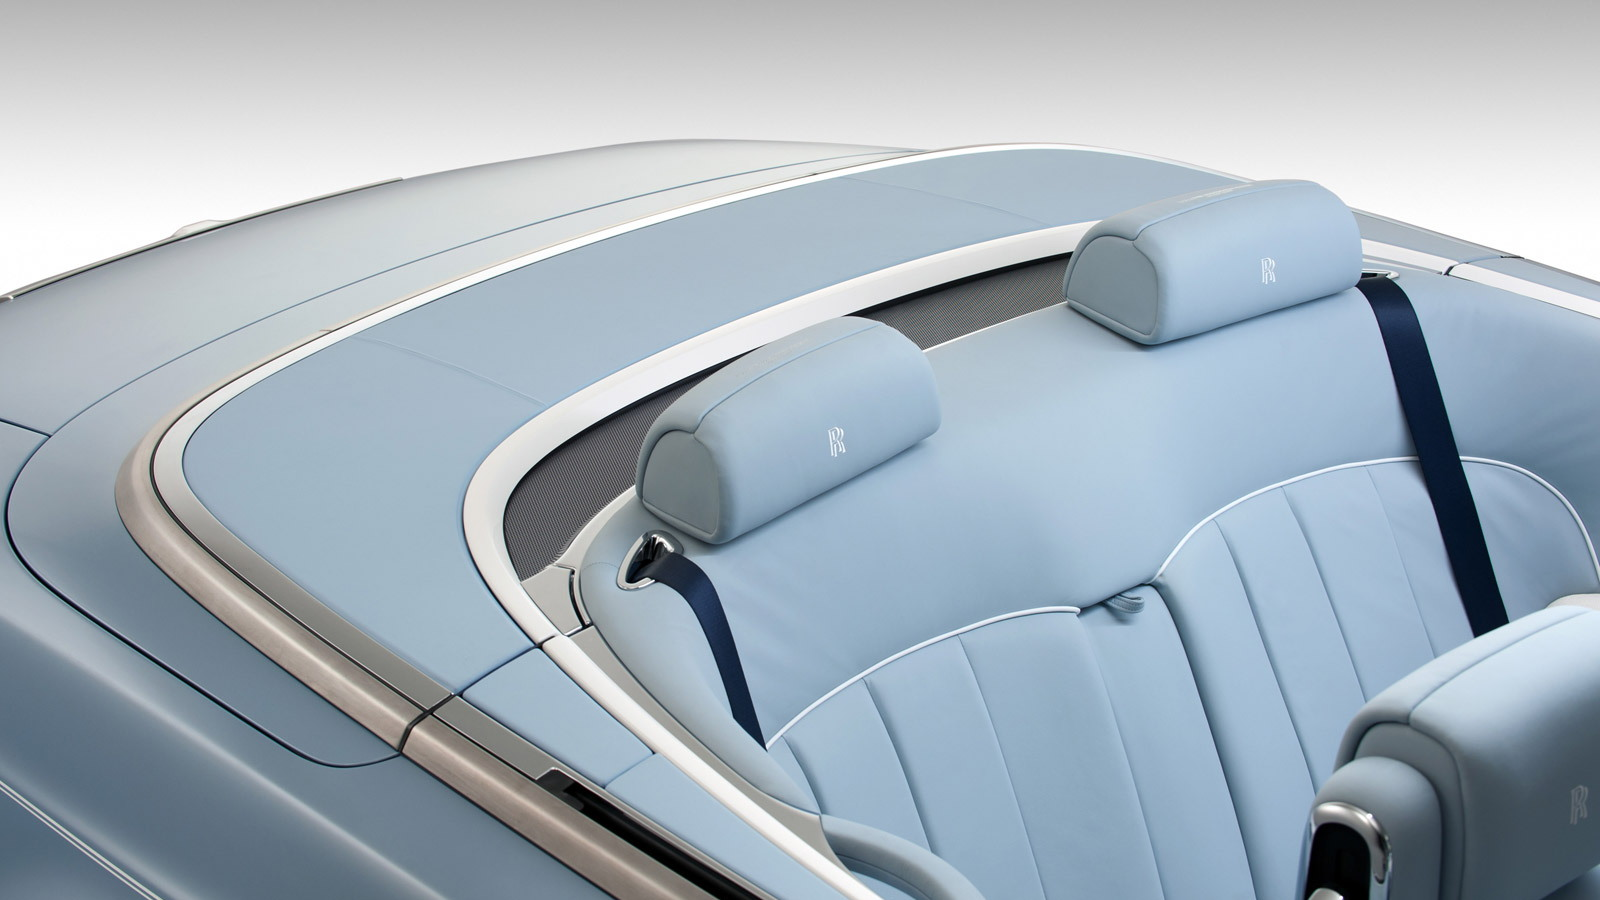 Art Deco Rolls-Royce Phantom Drophead Coupe, 2012 Paris Auto Show